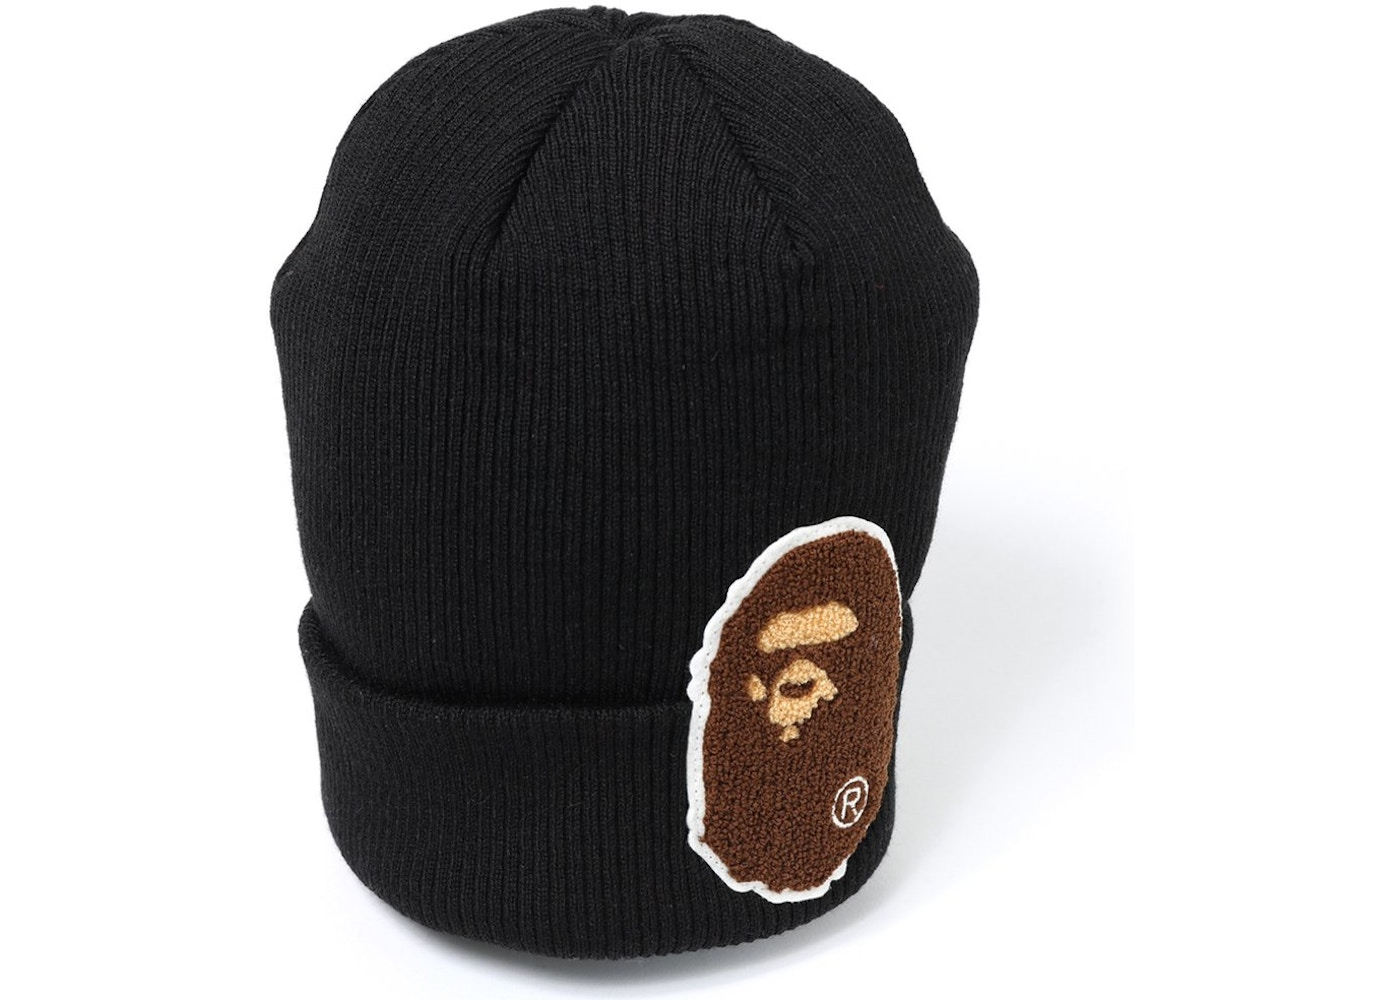 BAPE Big Ape Head Knit Cap Black. Big Ape Head Knit 9ace10db8e0